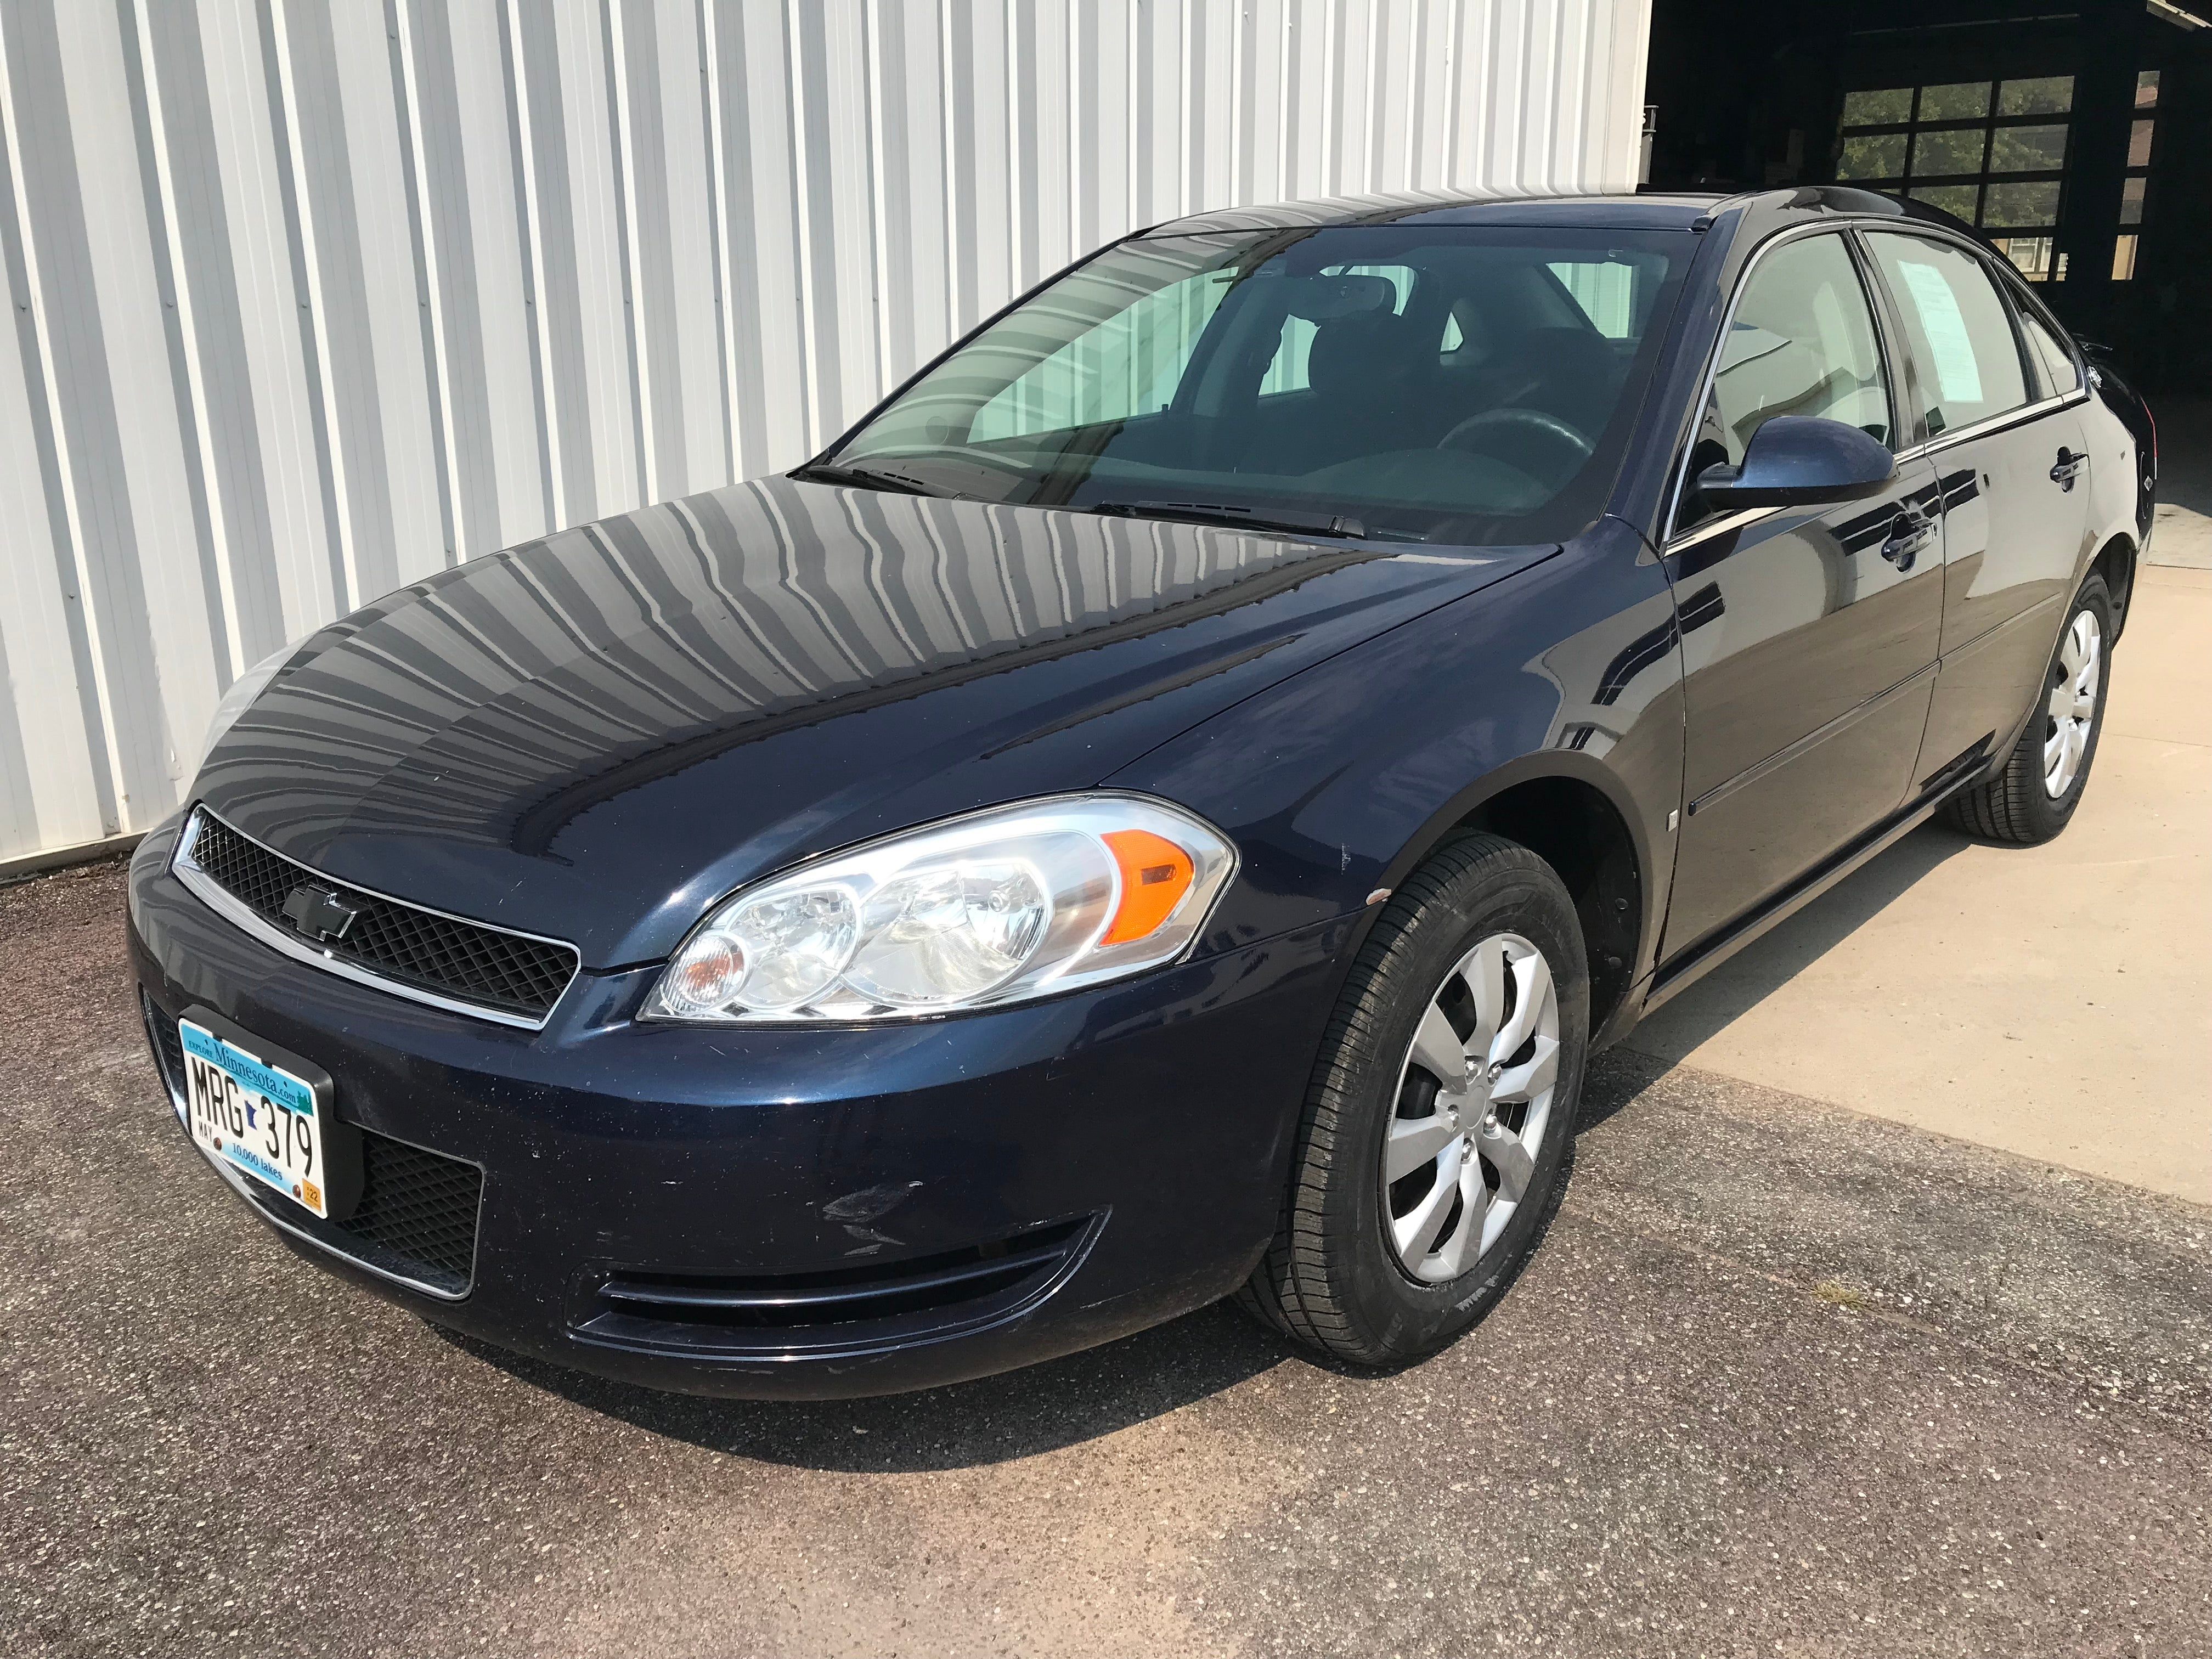 Used 2007 Chevrolet Impala LS with VIN 2G1WB58K079324274 for sale in Arlington, Minnesota